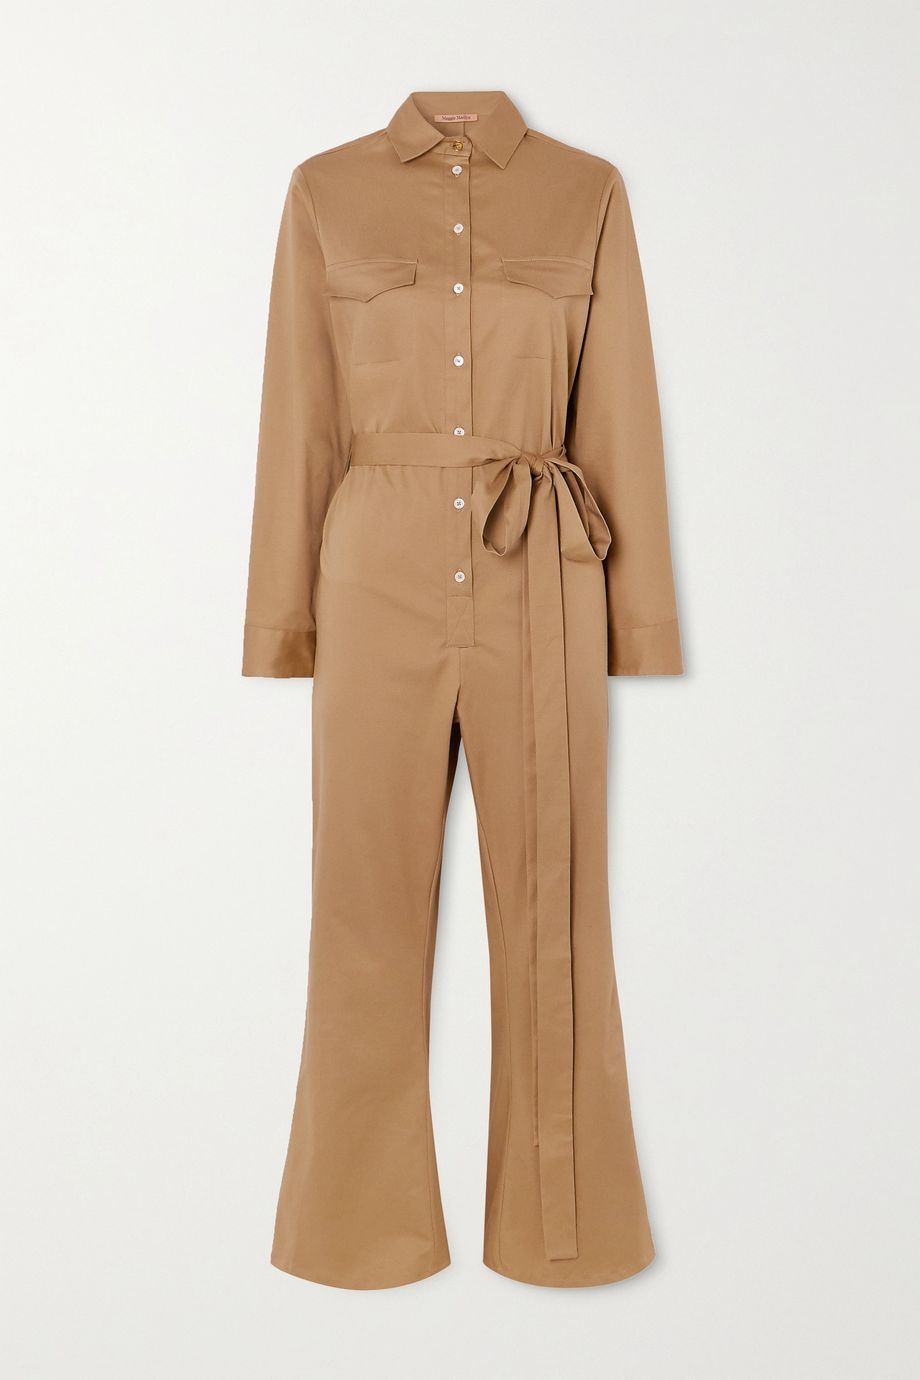 Maggie Marilyn + NET SUSTAIN Bite the Bullet cropped belted cotton-blend twill jumpsuit